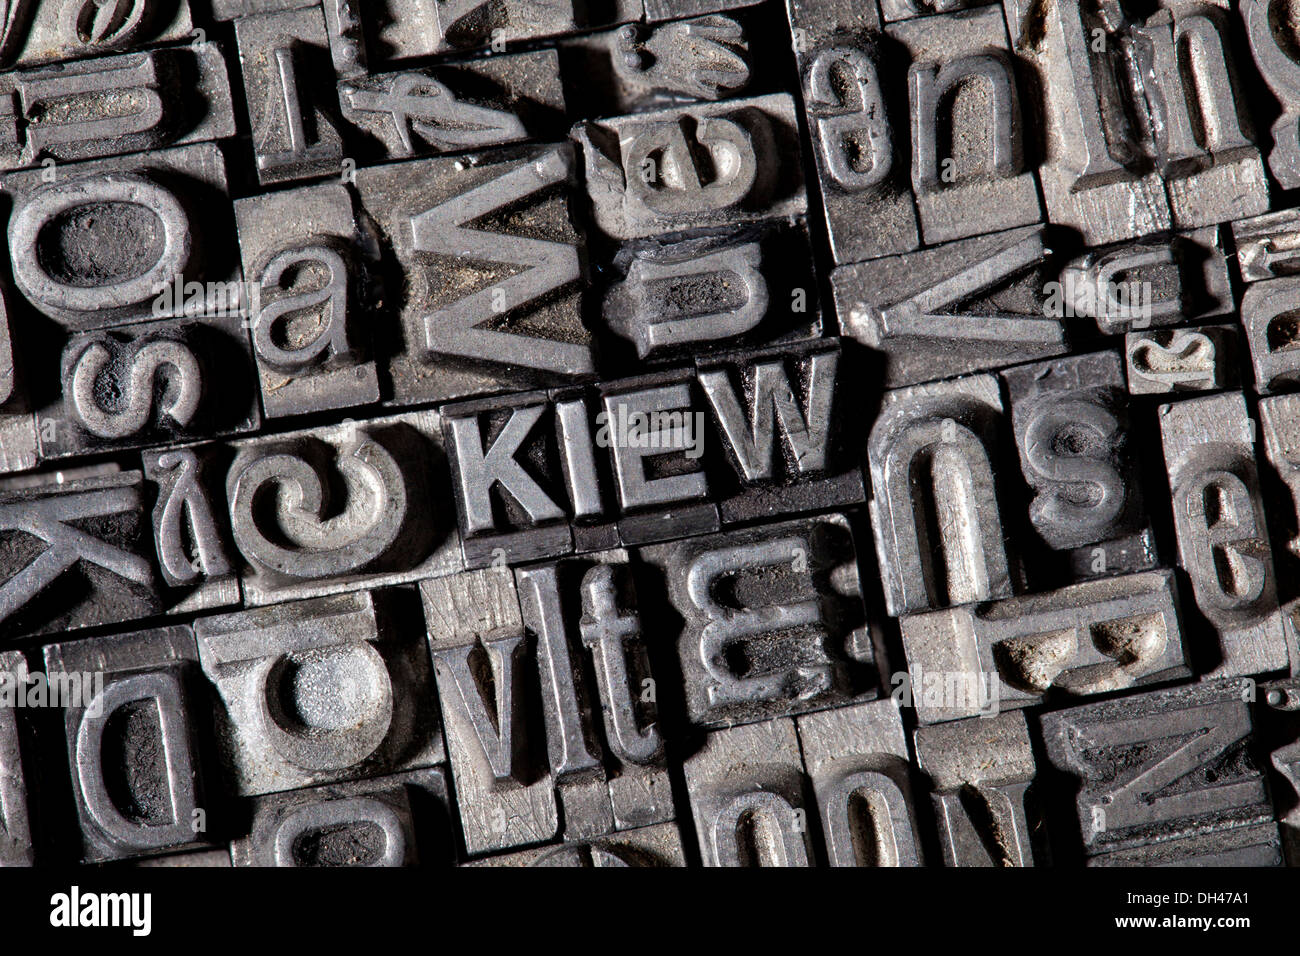 Old lead letters forming the word 'KIEW', German for 'KIEV' - Stock Image